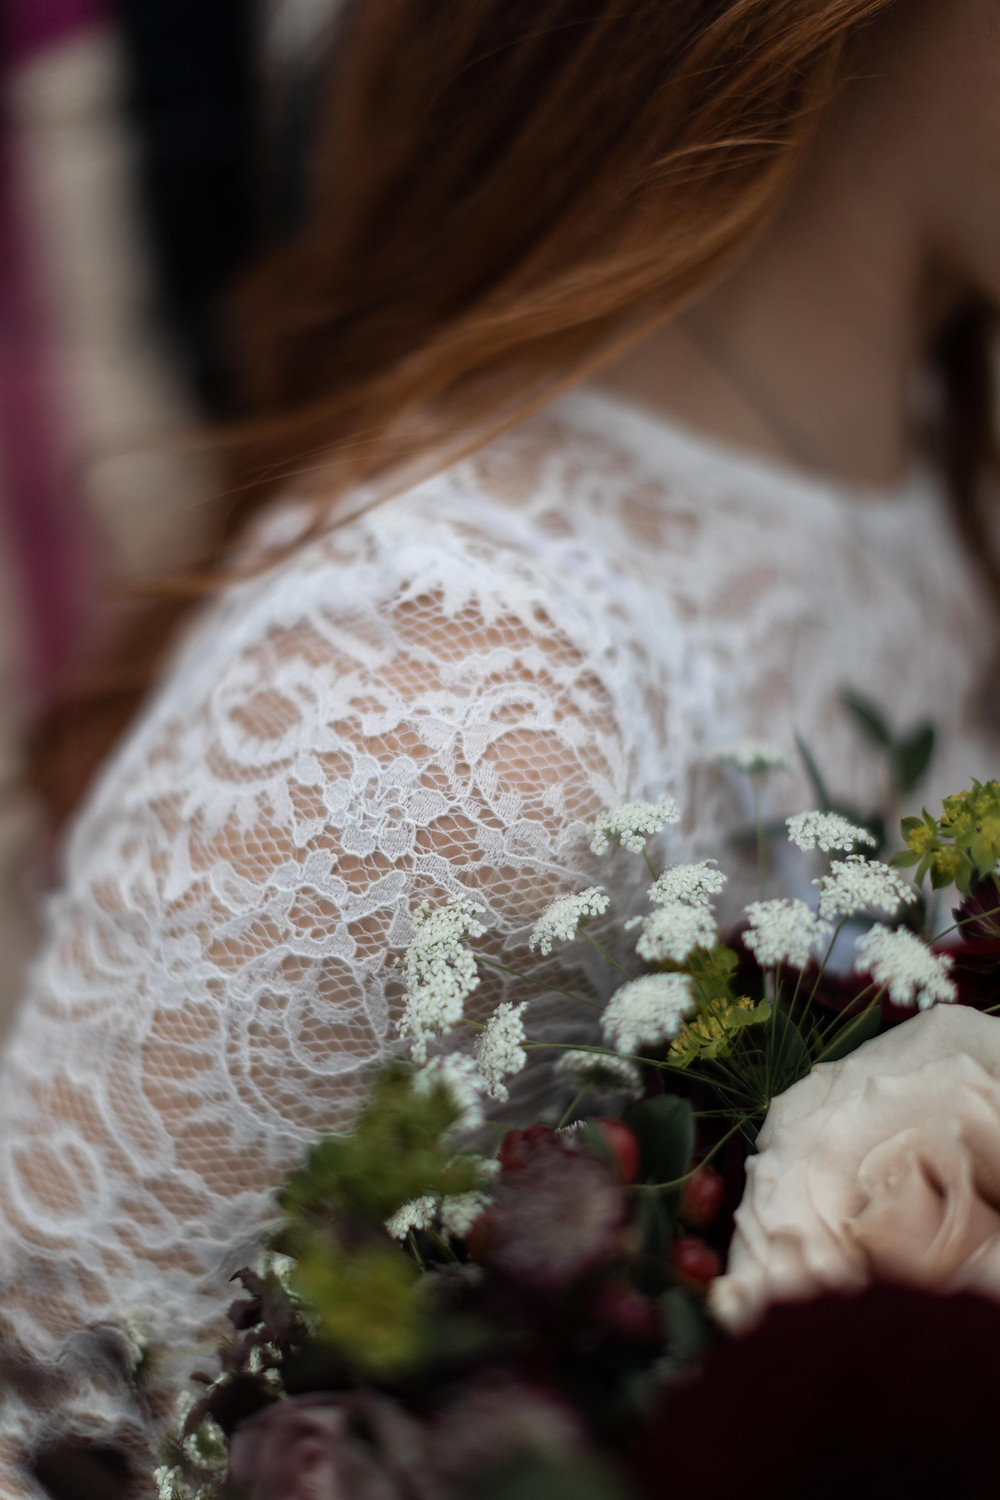 Detail shot of the bride's dress